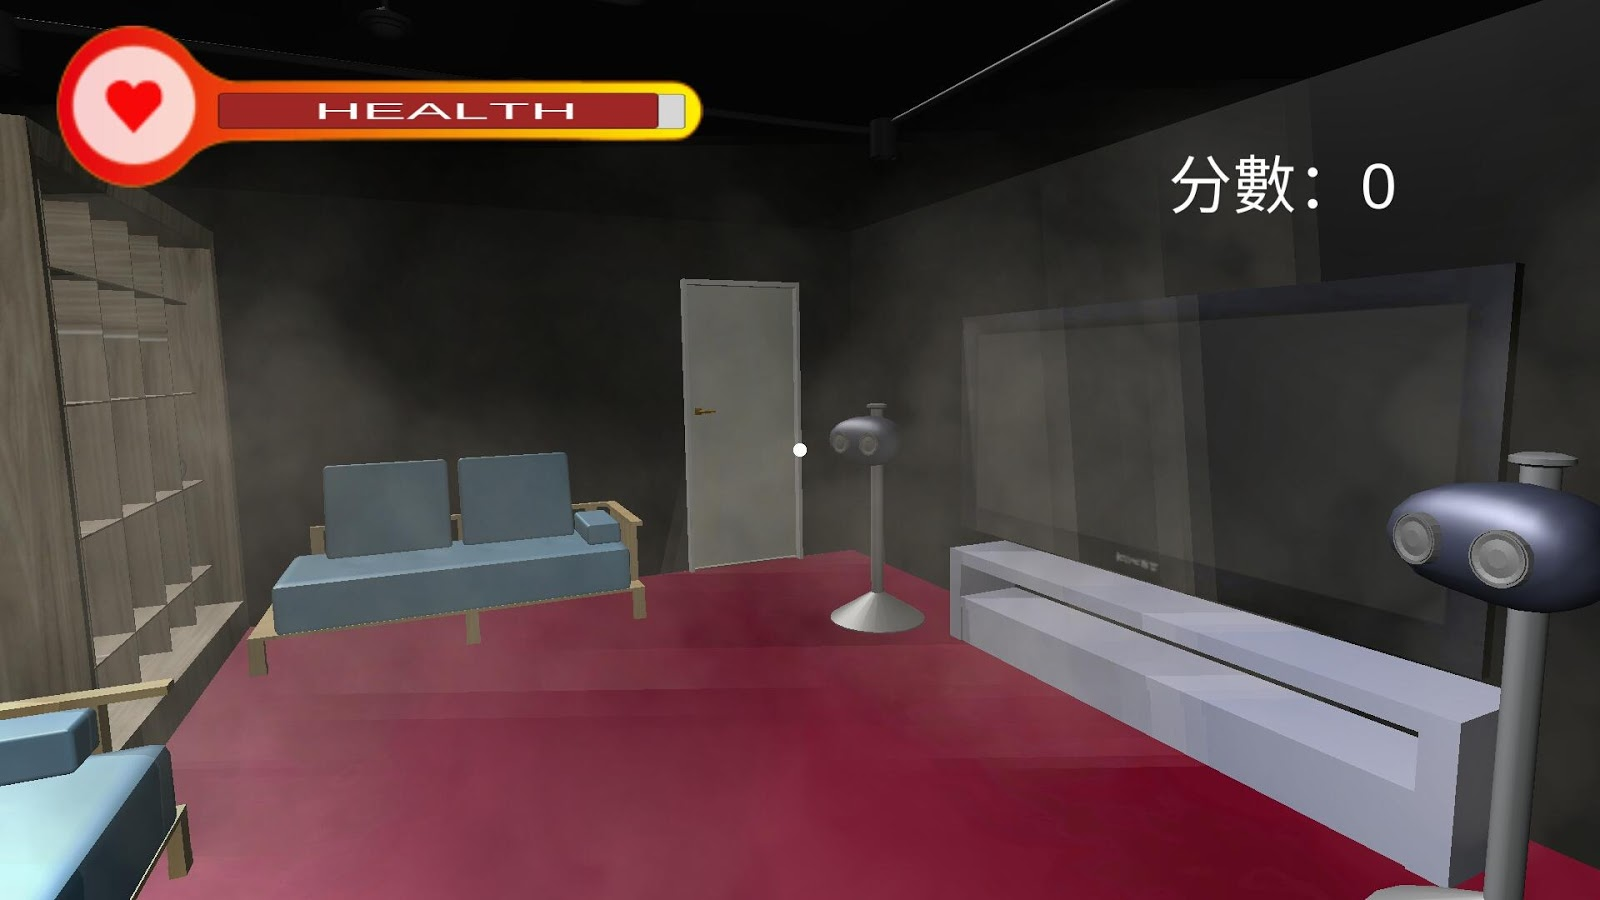 火災逃生 VR- screenshot